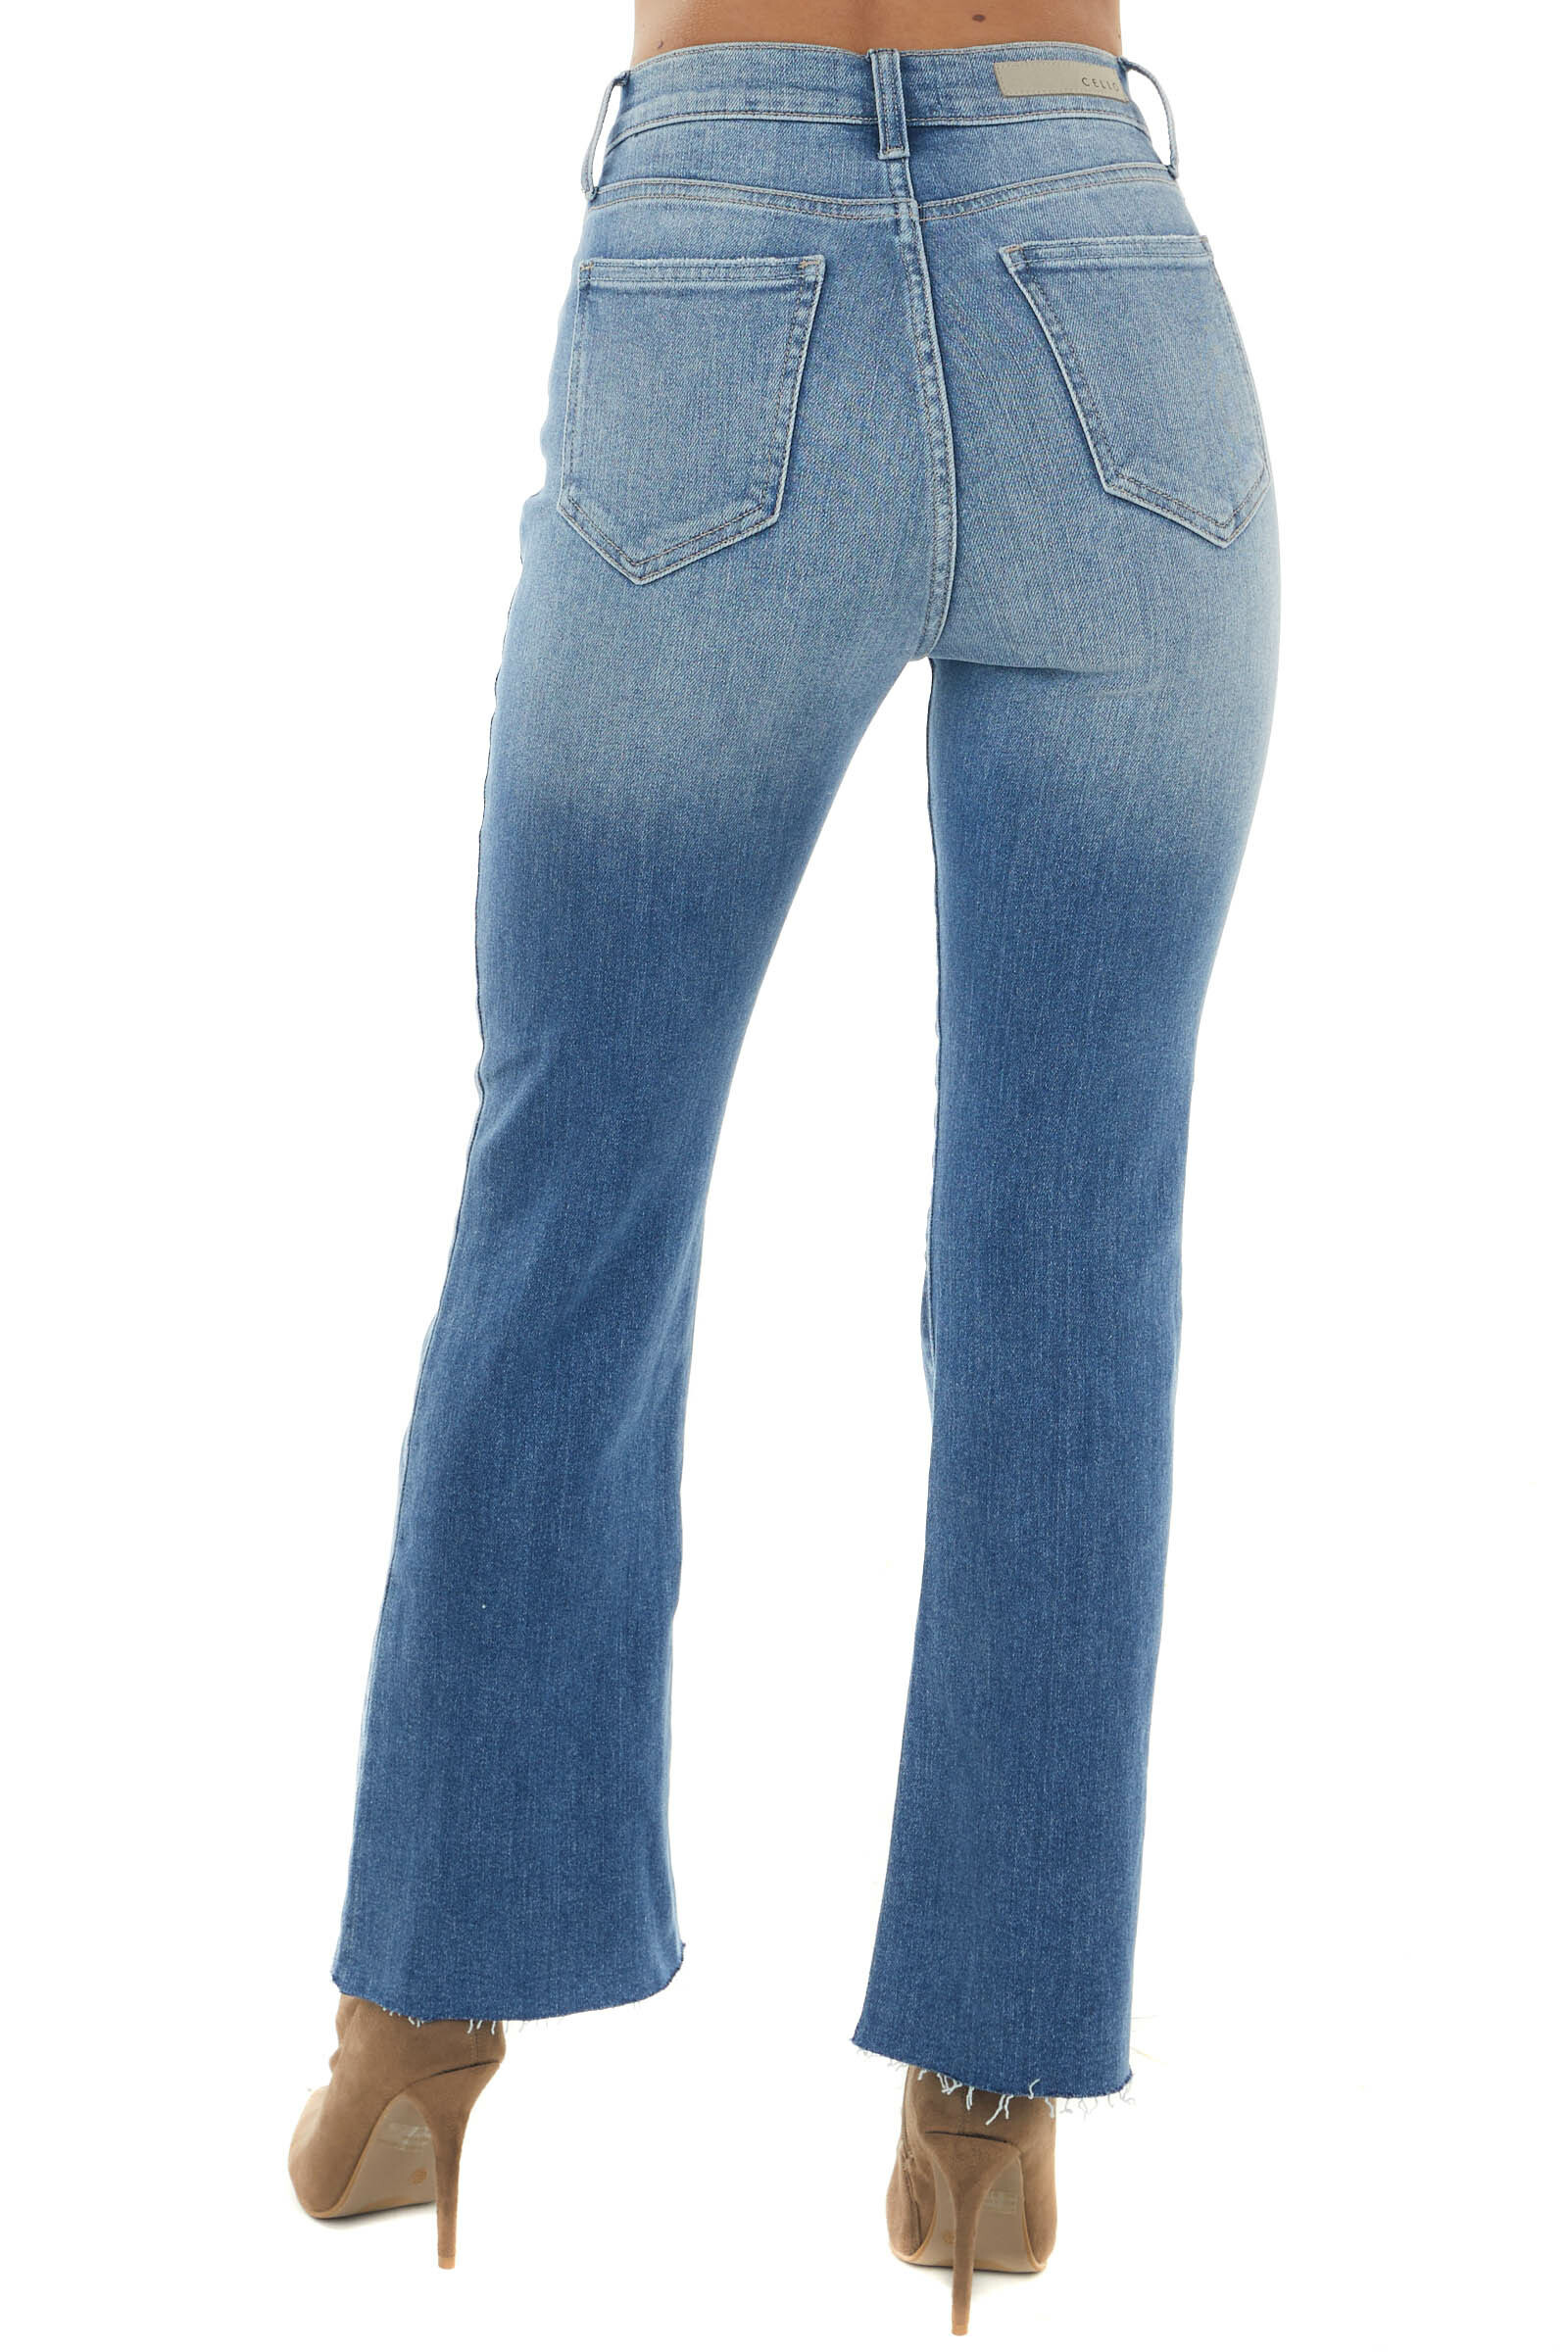 Medium Wash High Rise Cropped Flare Jeans